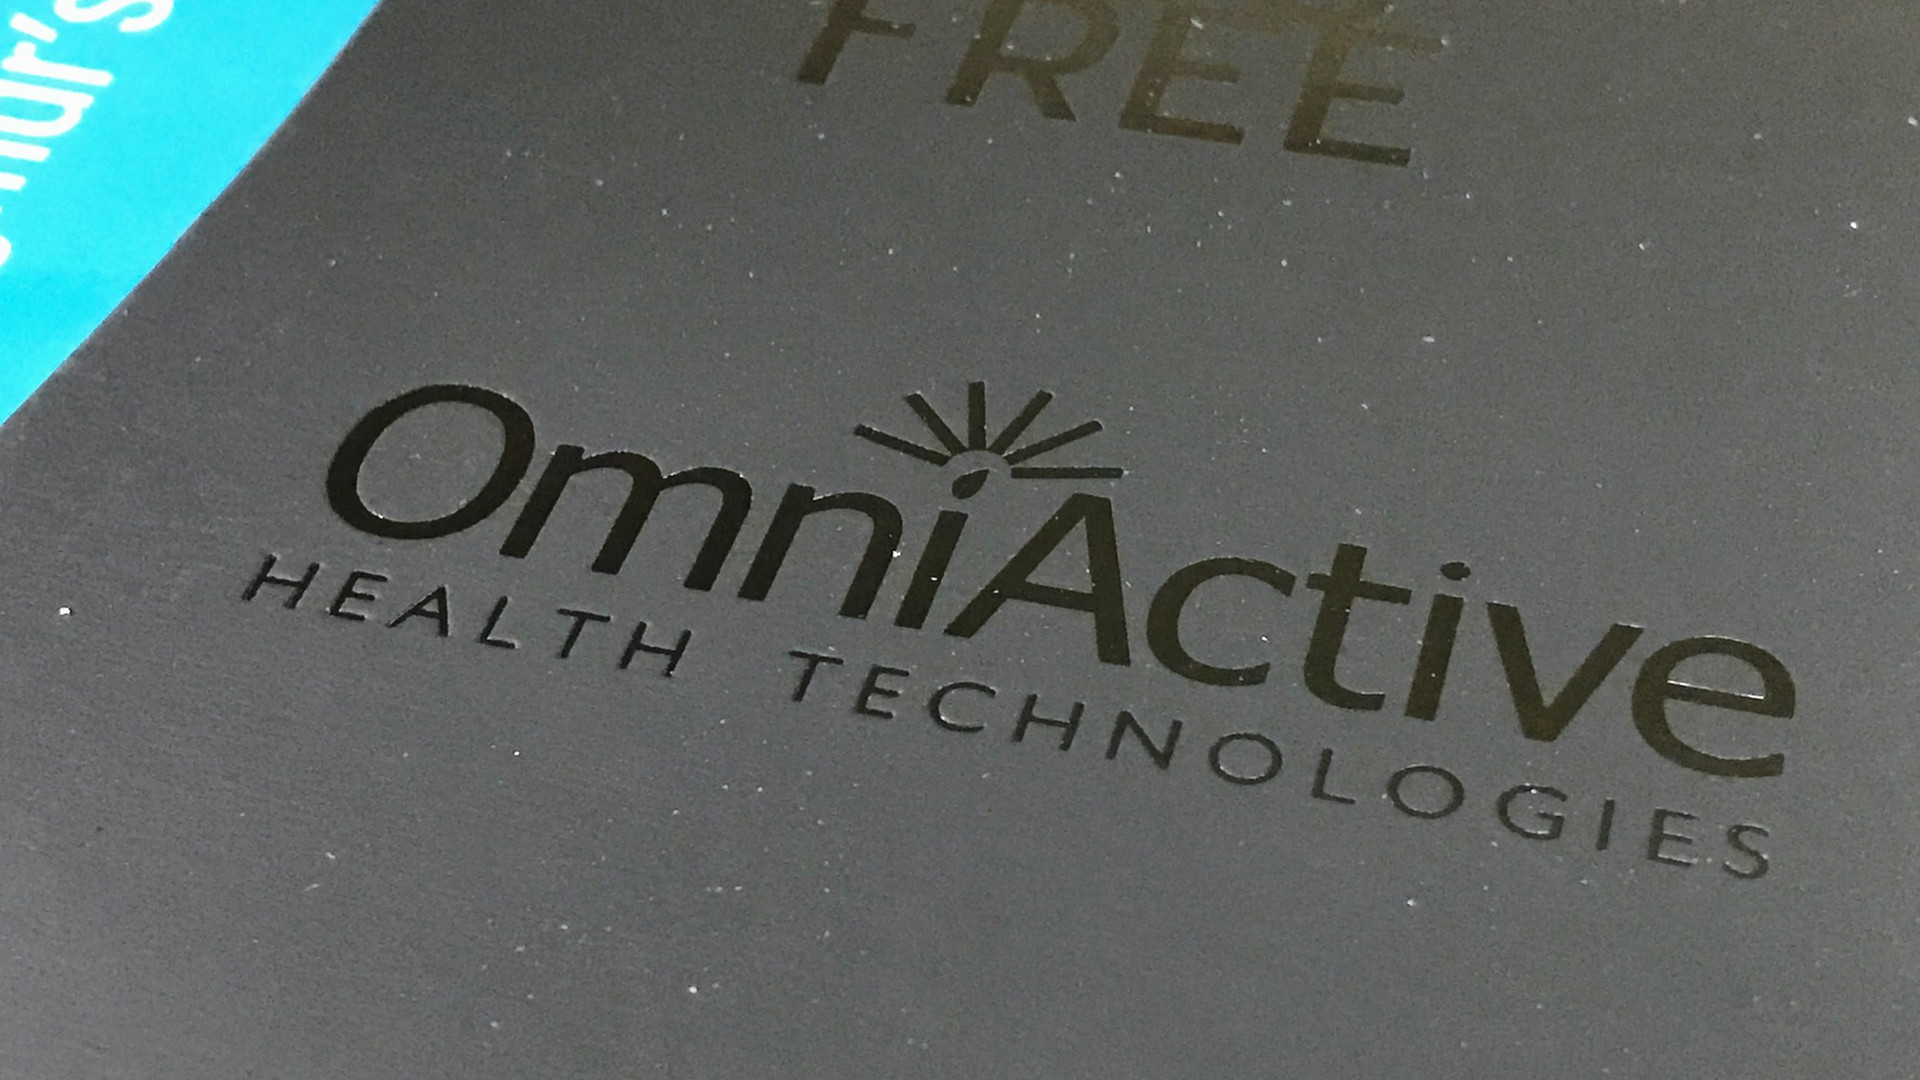 Omega High Impact Print Solutions Think Book